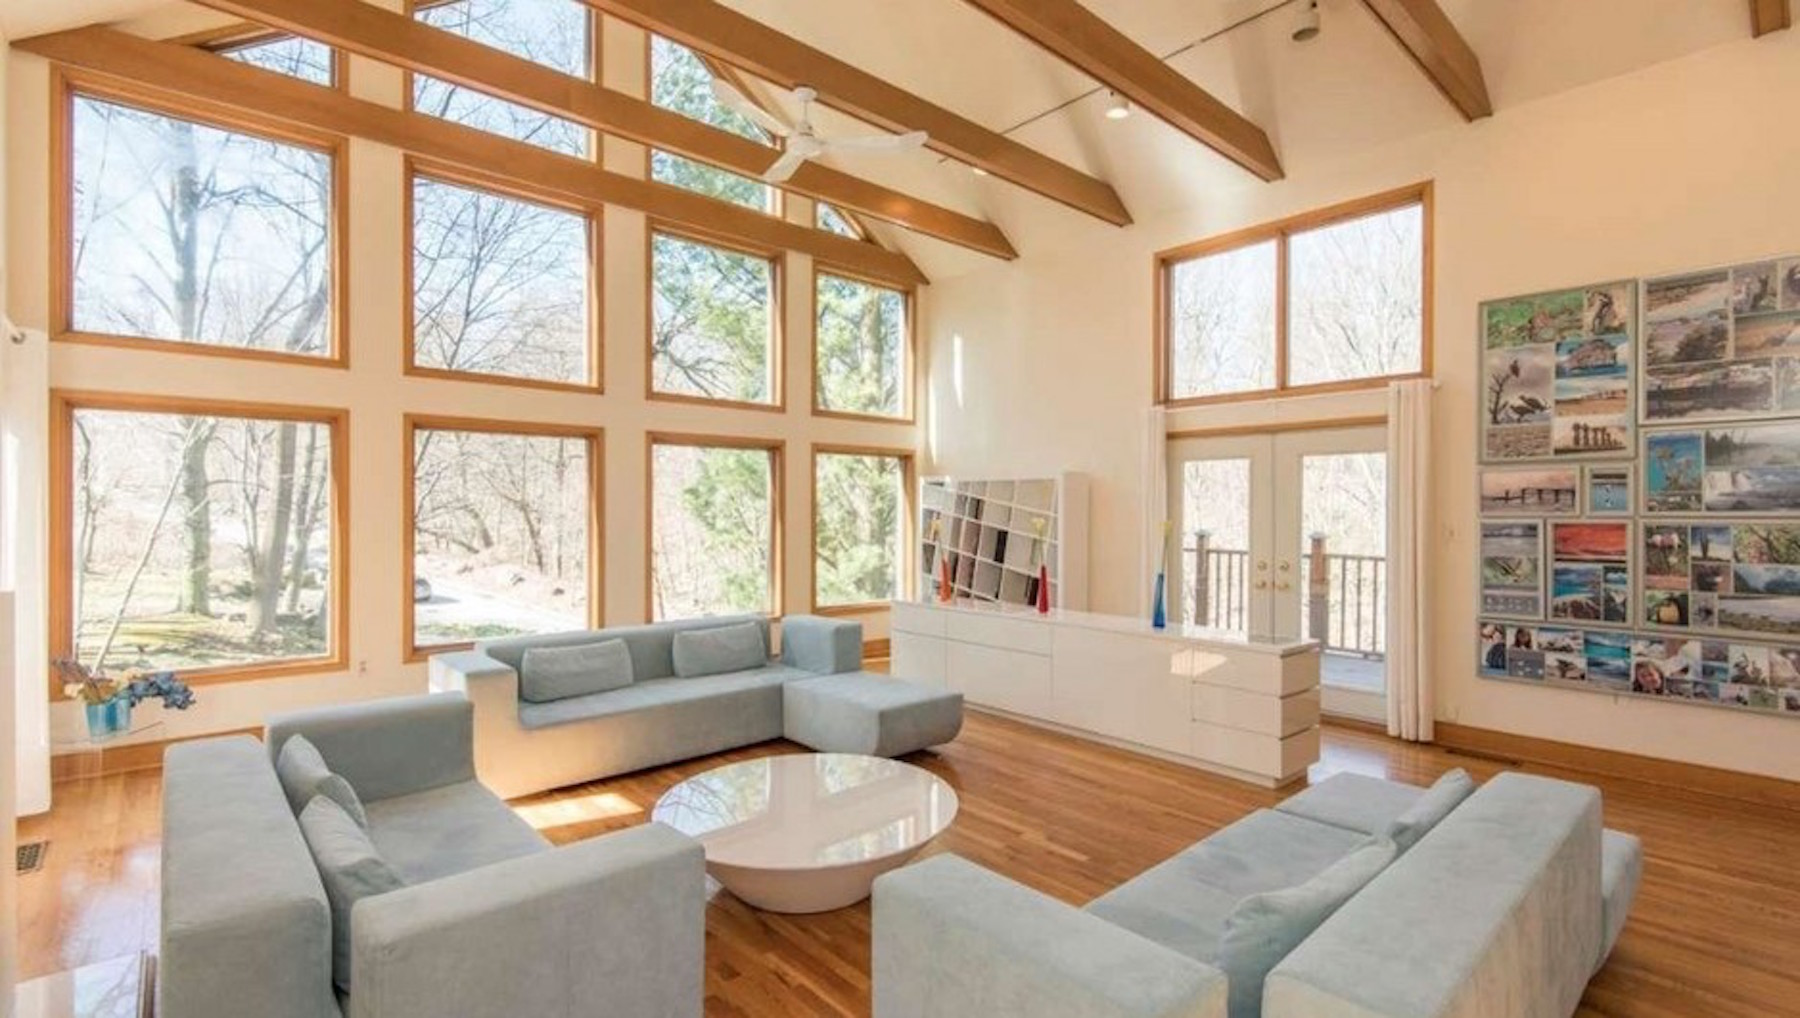 A large two-story living space with exposed beams, hardwood floors, and a wall of windows.